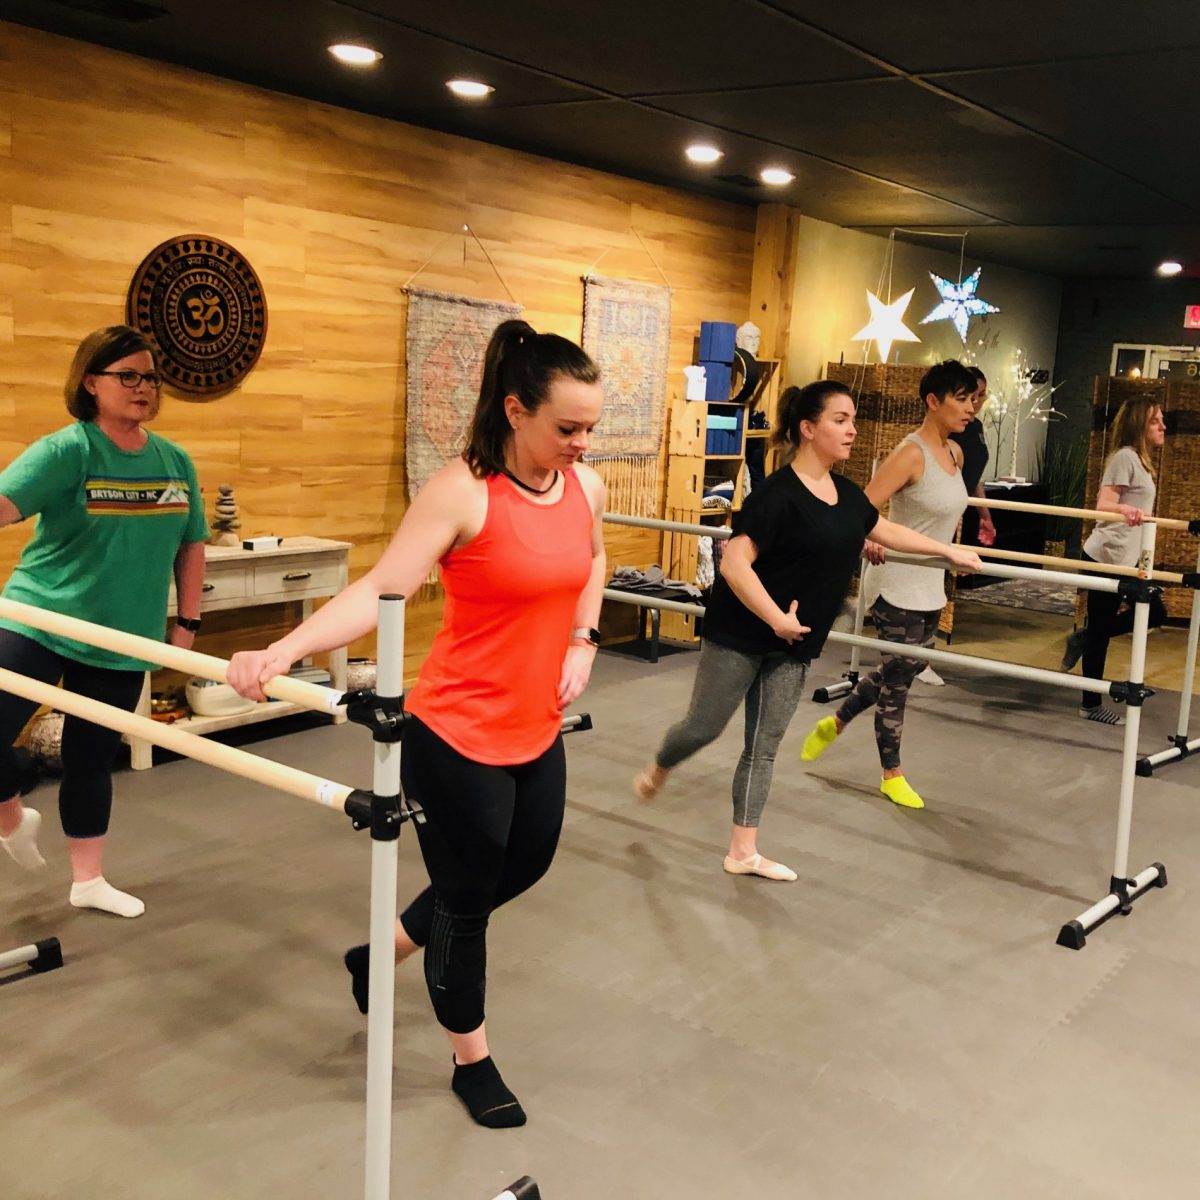 Customers in a barre pilates class at Flex Fitness